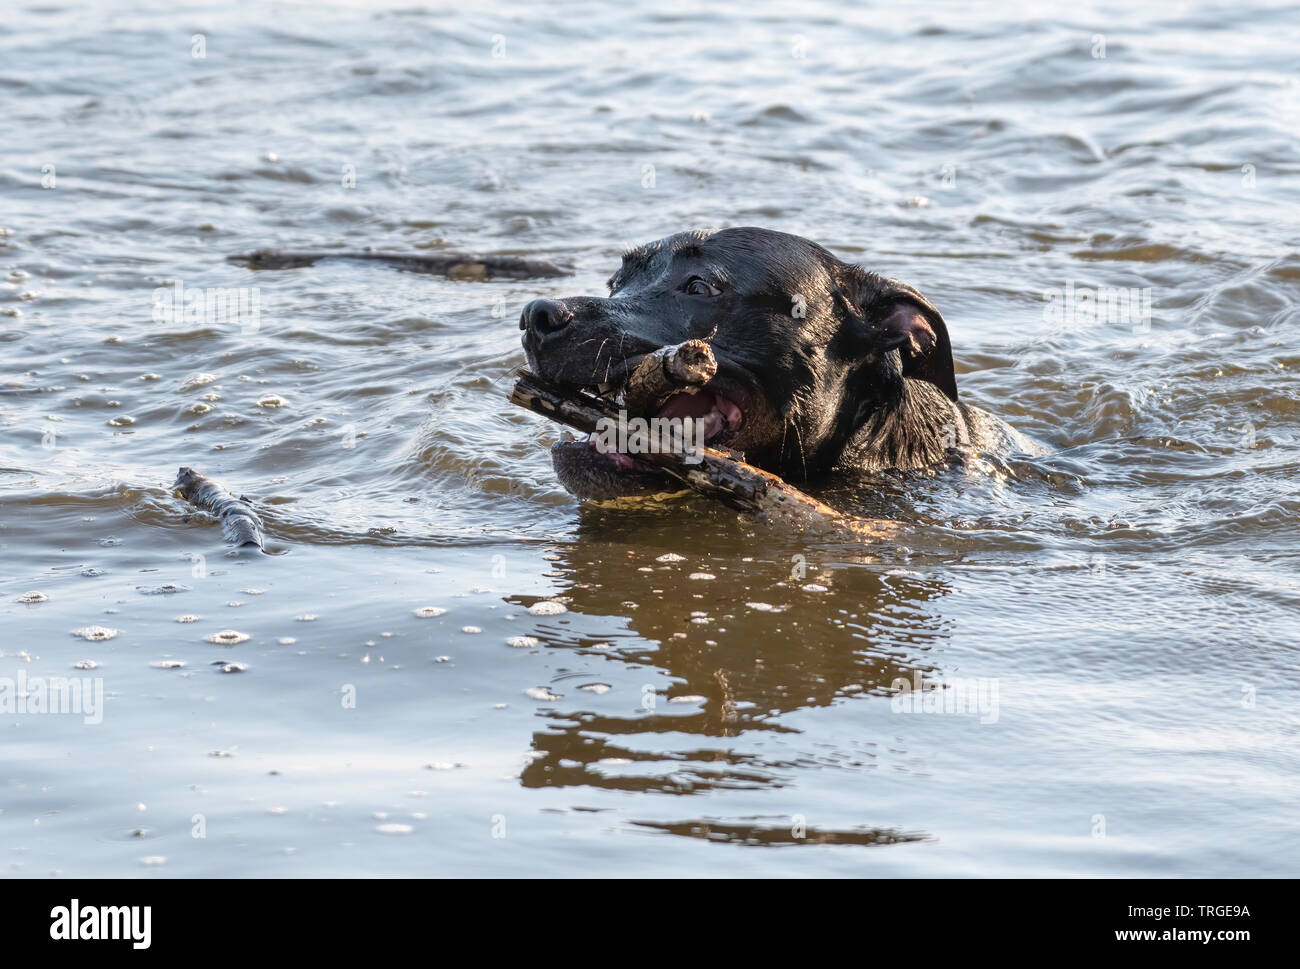 A black Labrador mixed breed dog is an over-achiever after his person throws one stick into a pond, and he retrieves two at once. - Stock Image